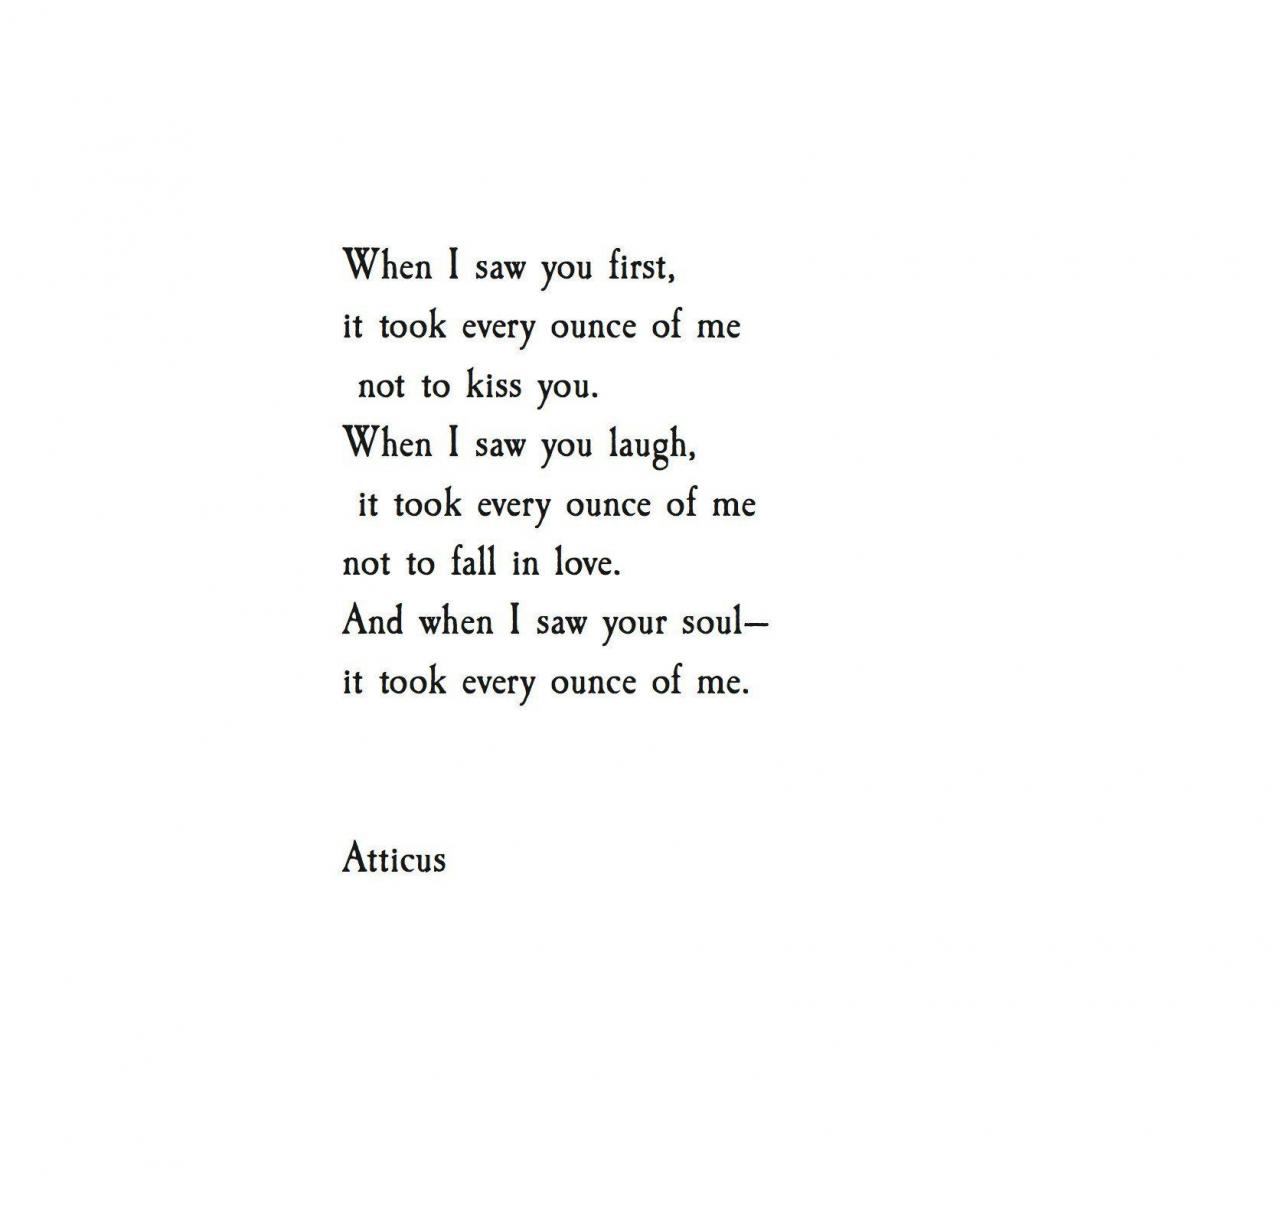 Atticus Poetry On Twitter  Quotespoem Quoteswise Quotesnew Love Quotessweet